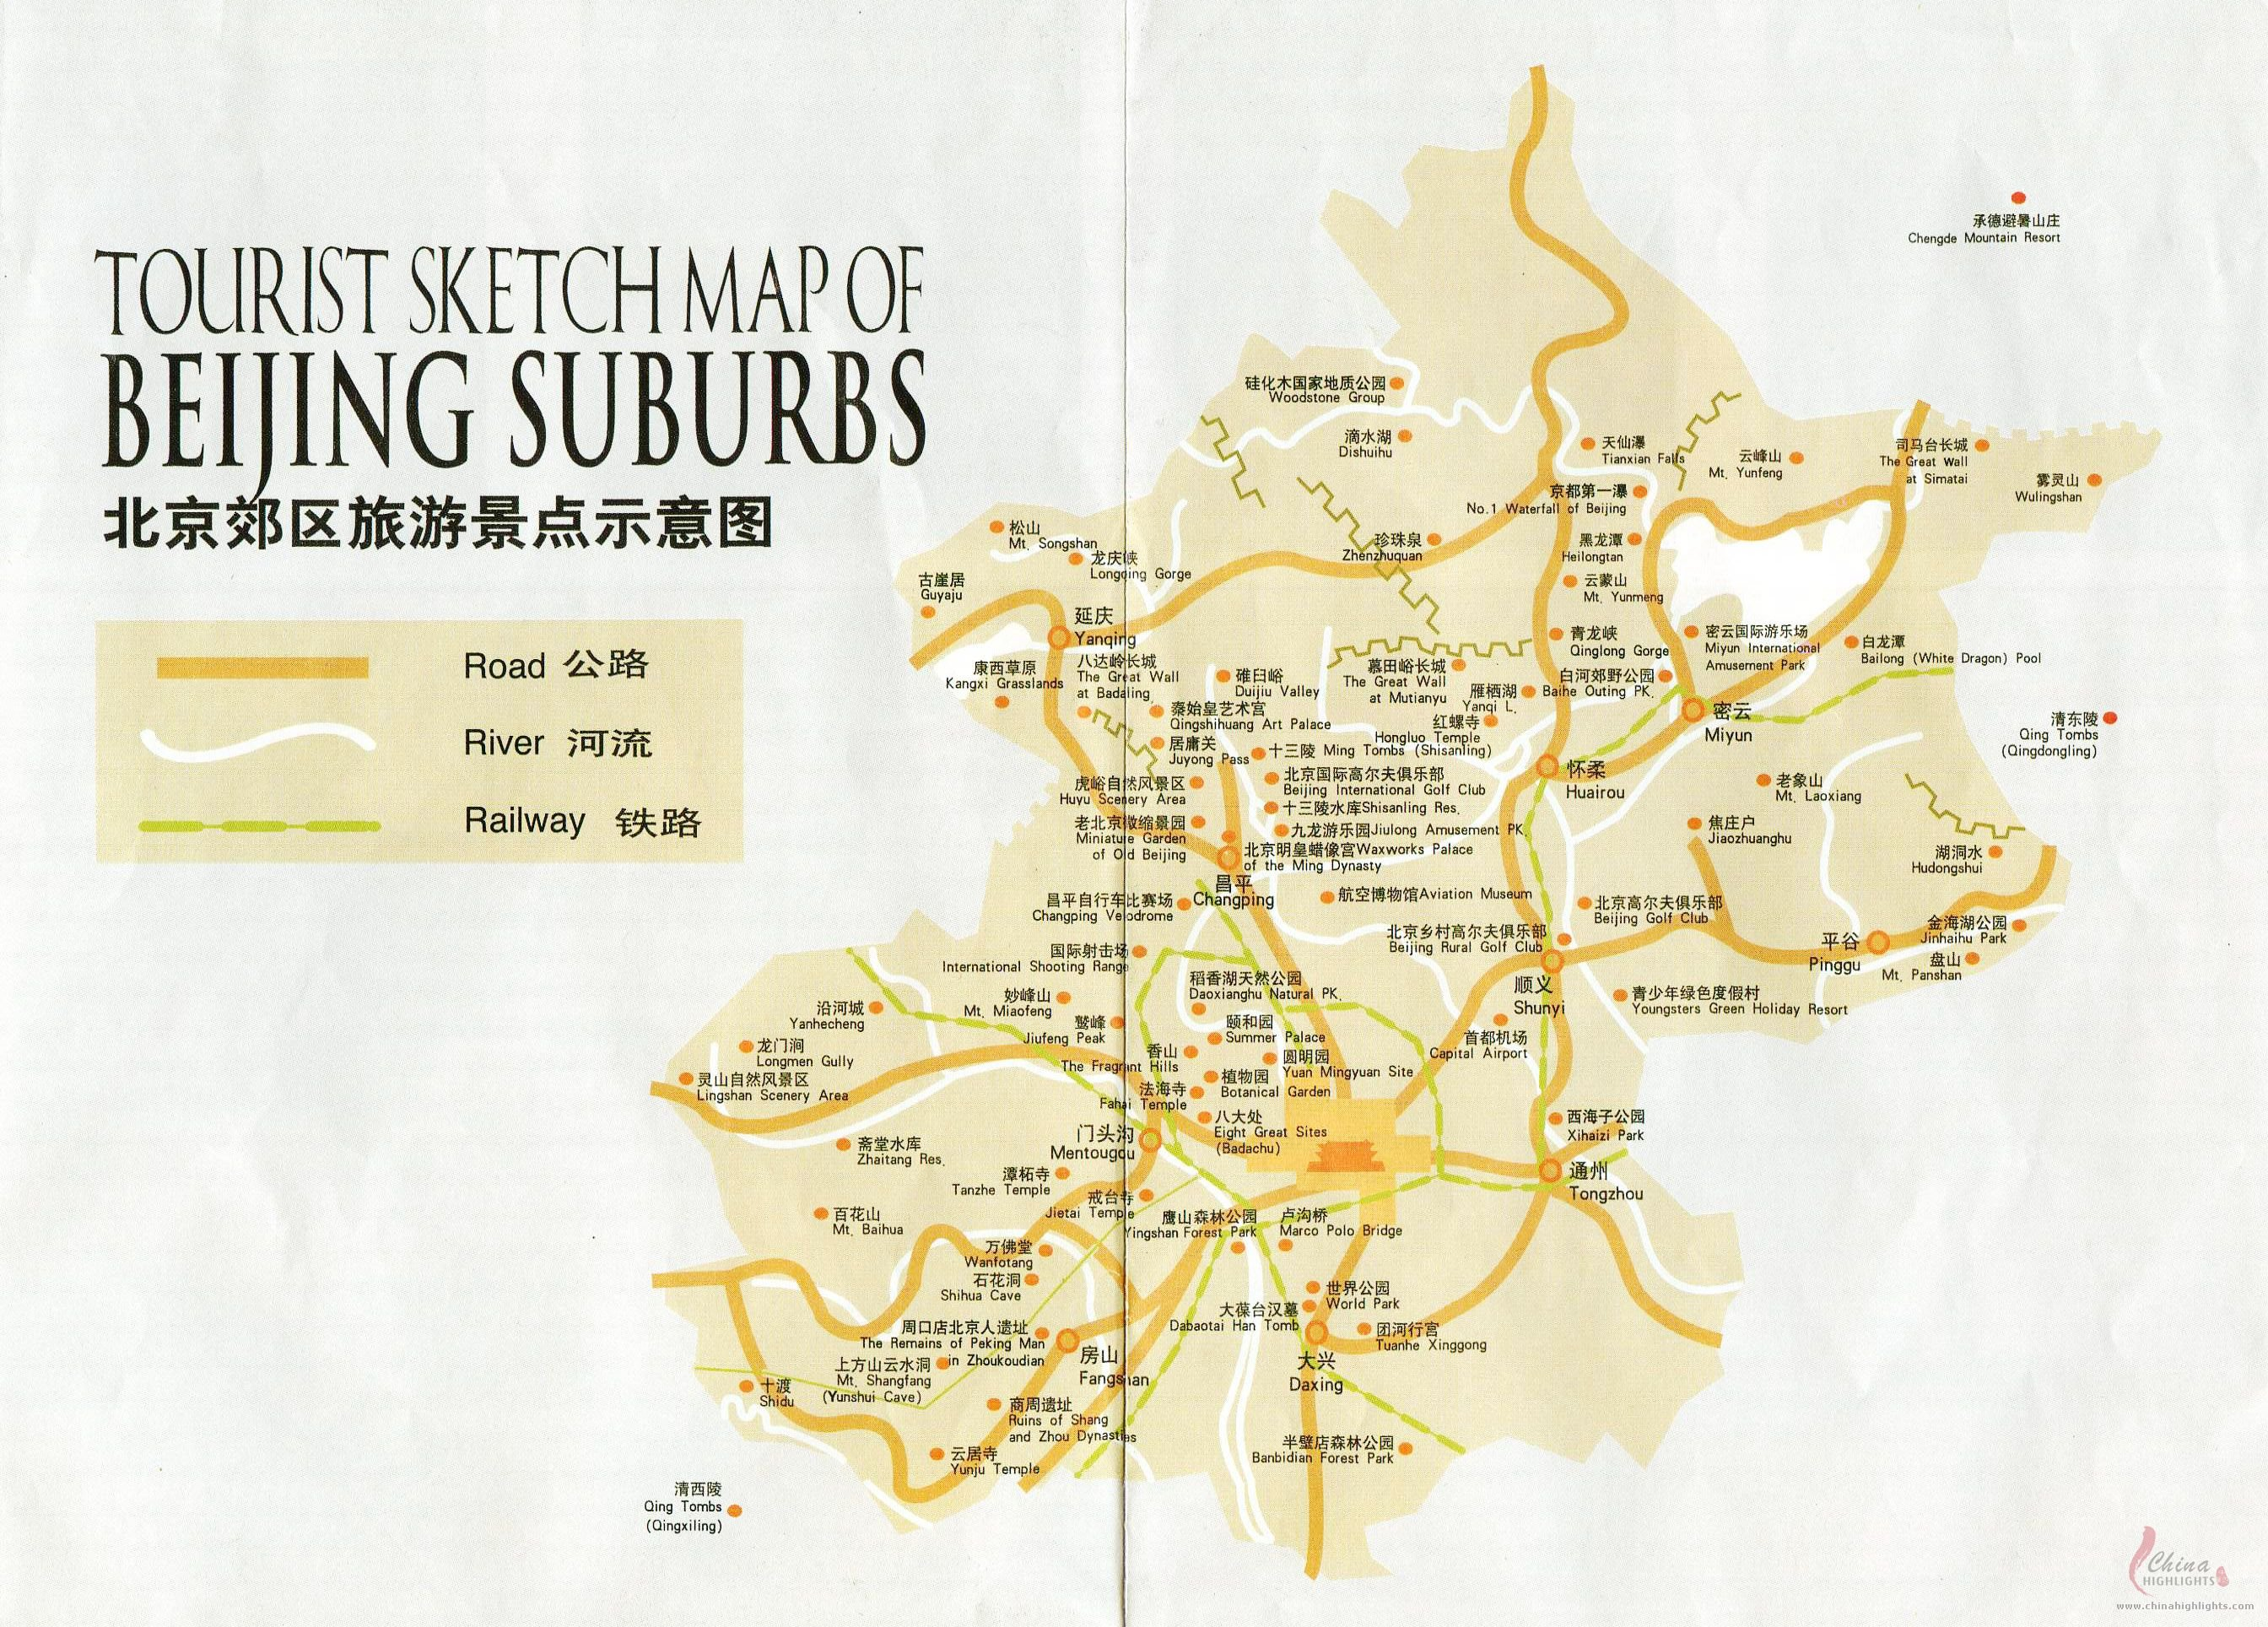 China City Tourist Maps Maps Of China City Tourist – Beijing Tourist Attractions Map